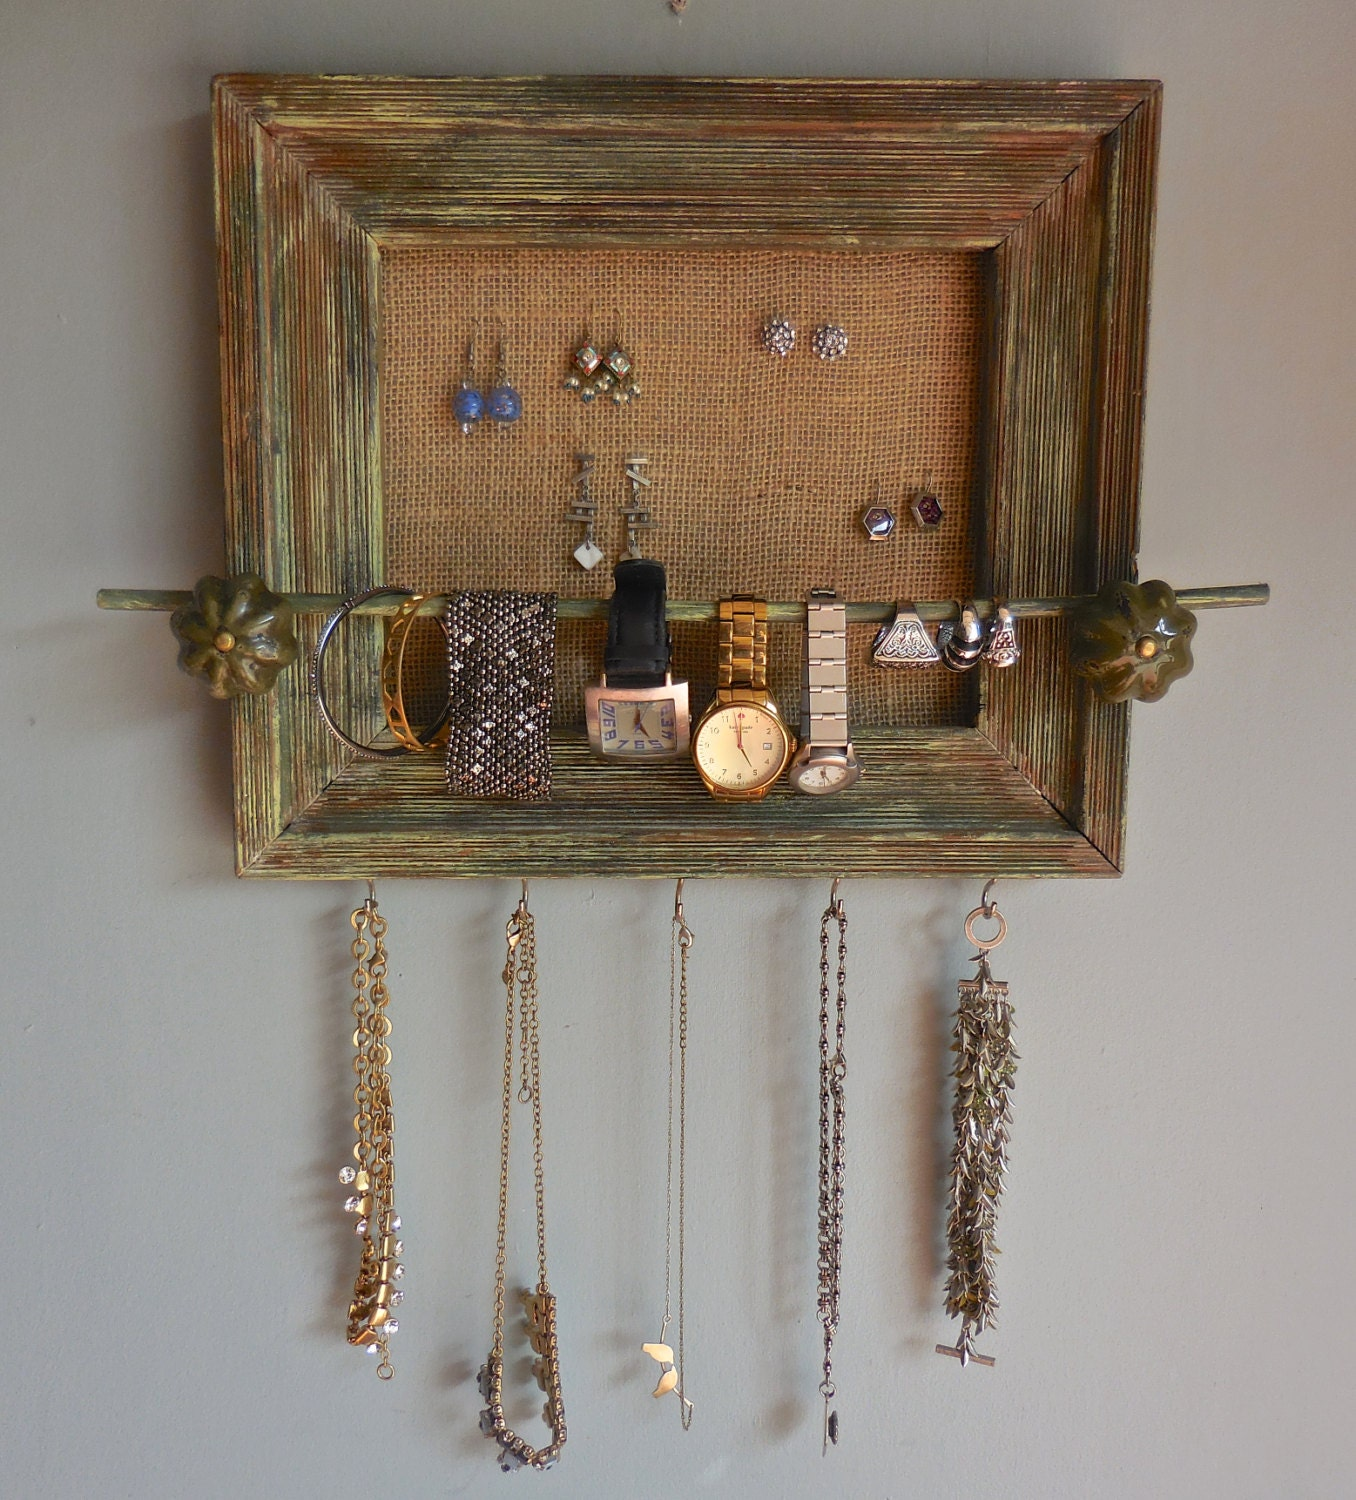 Mirror Jewelry Cabinet - Solid Wood Wall-Mounted Organizer ... |Wooden Wall Jewelry Organizer